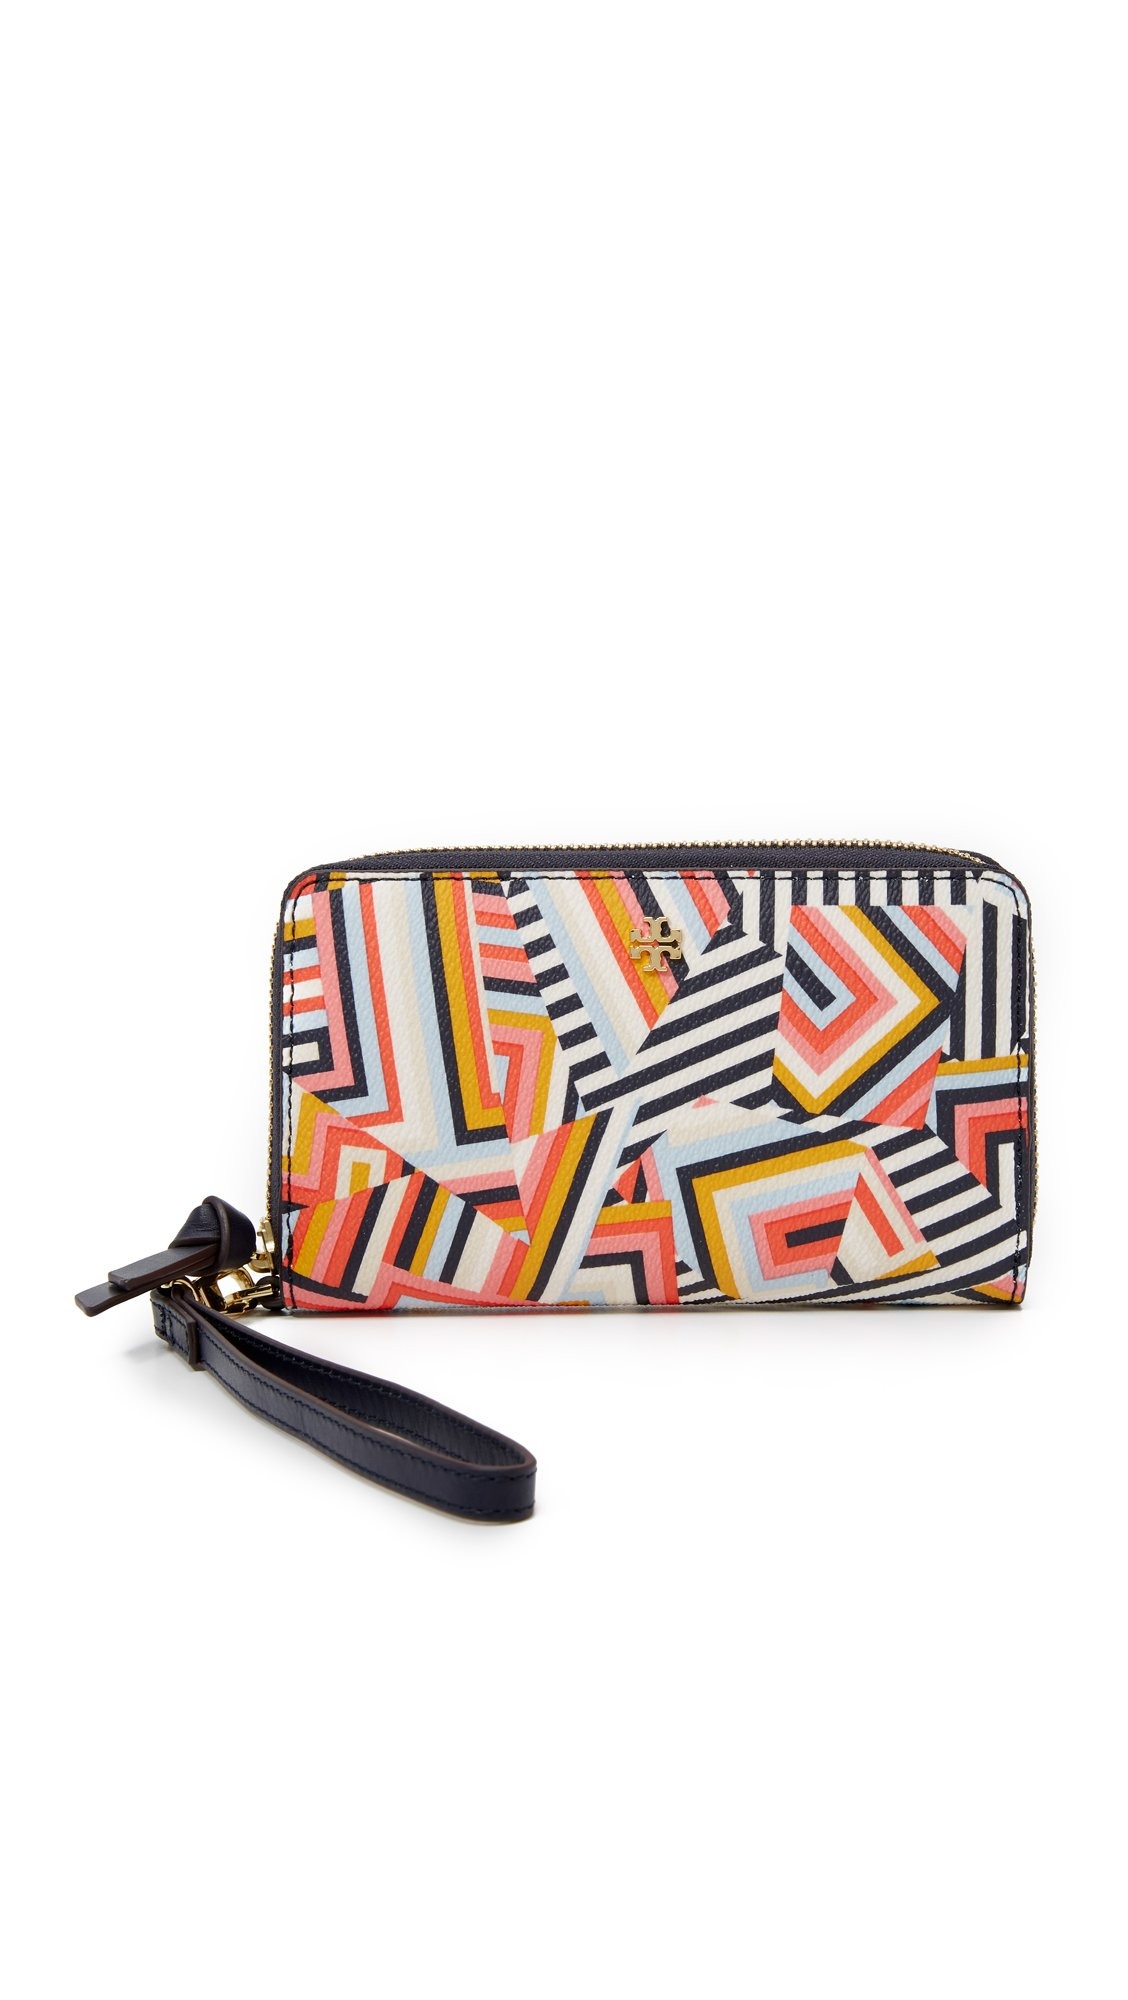 Tory Burch Kerrington Smartphone Wristlet Wallet Style No. 12169118 (Cut Out T Print) by Tory Burch